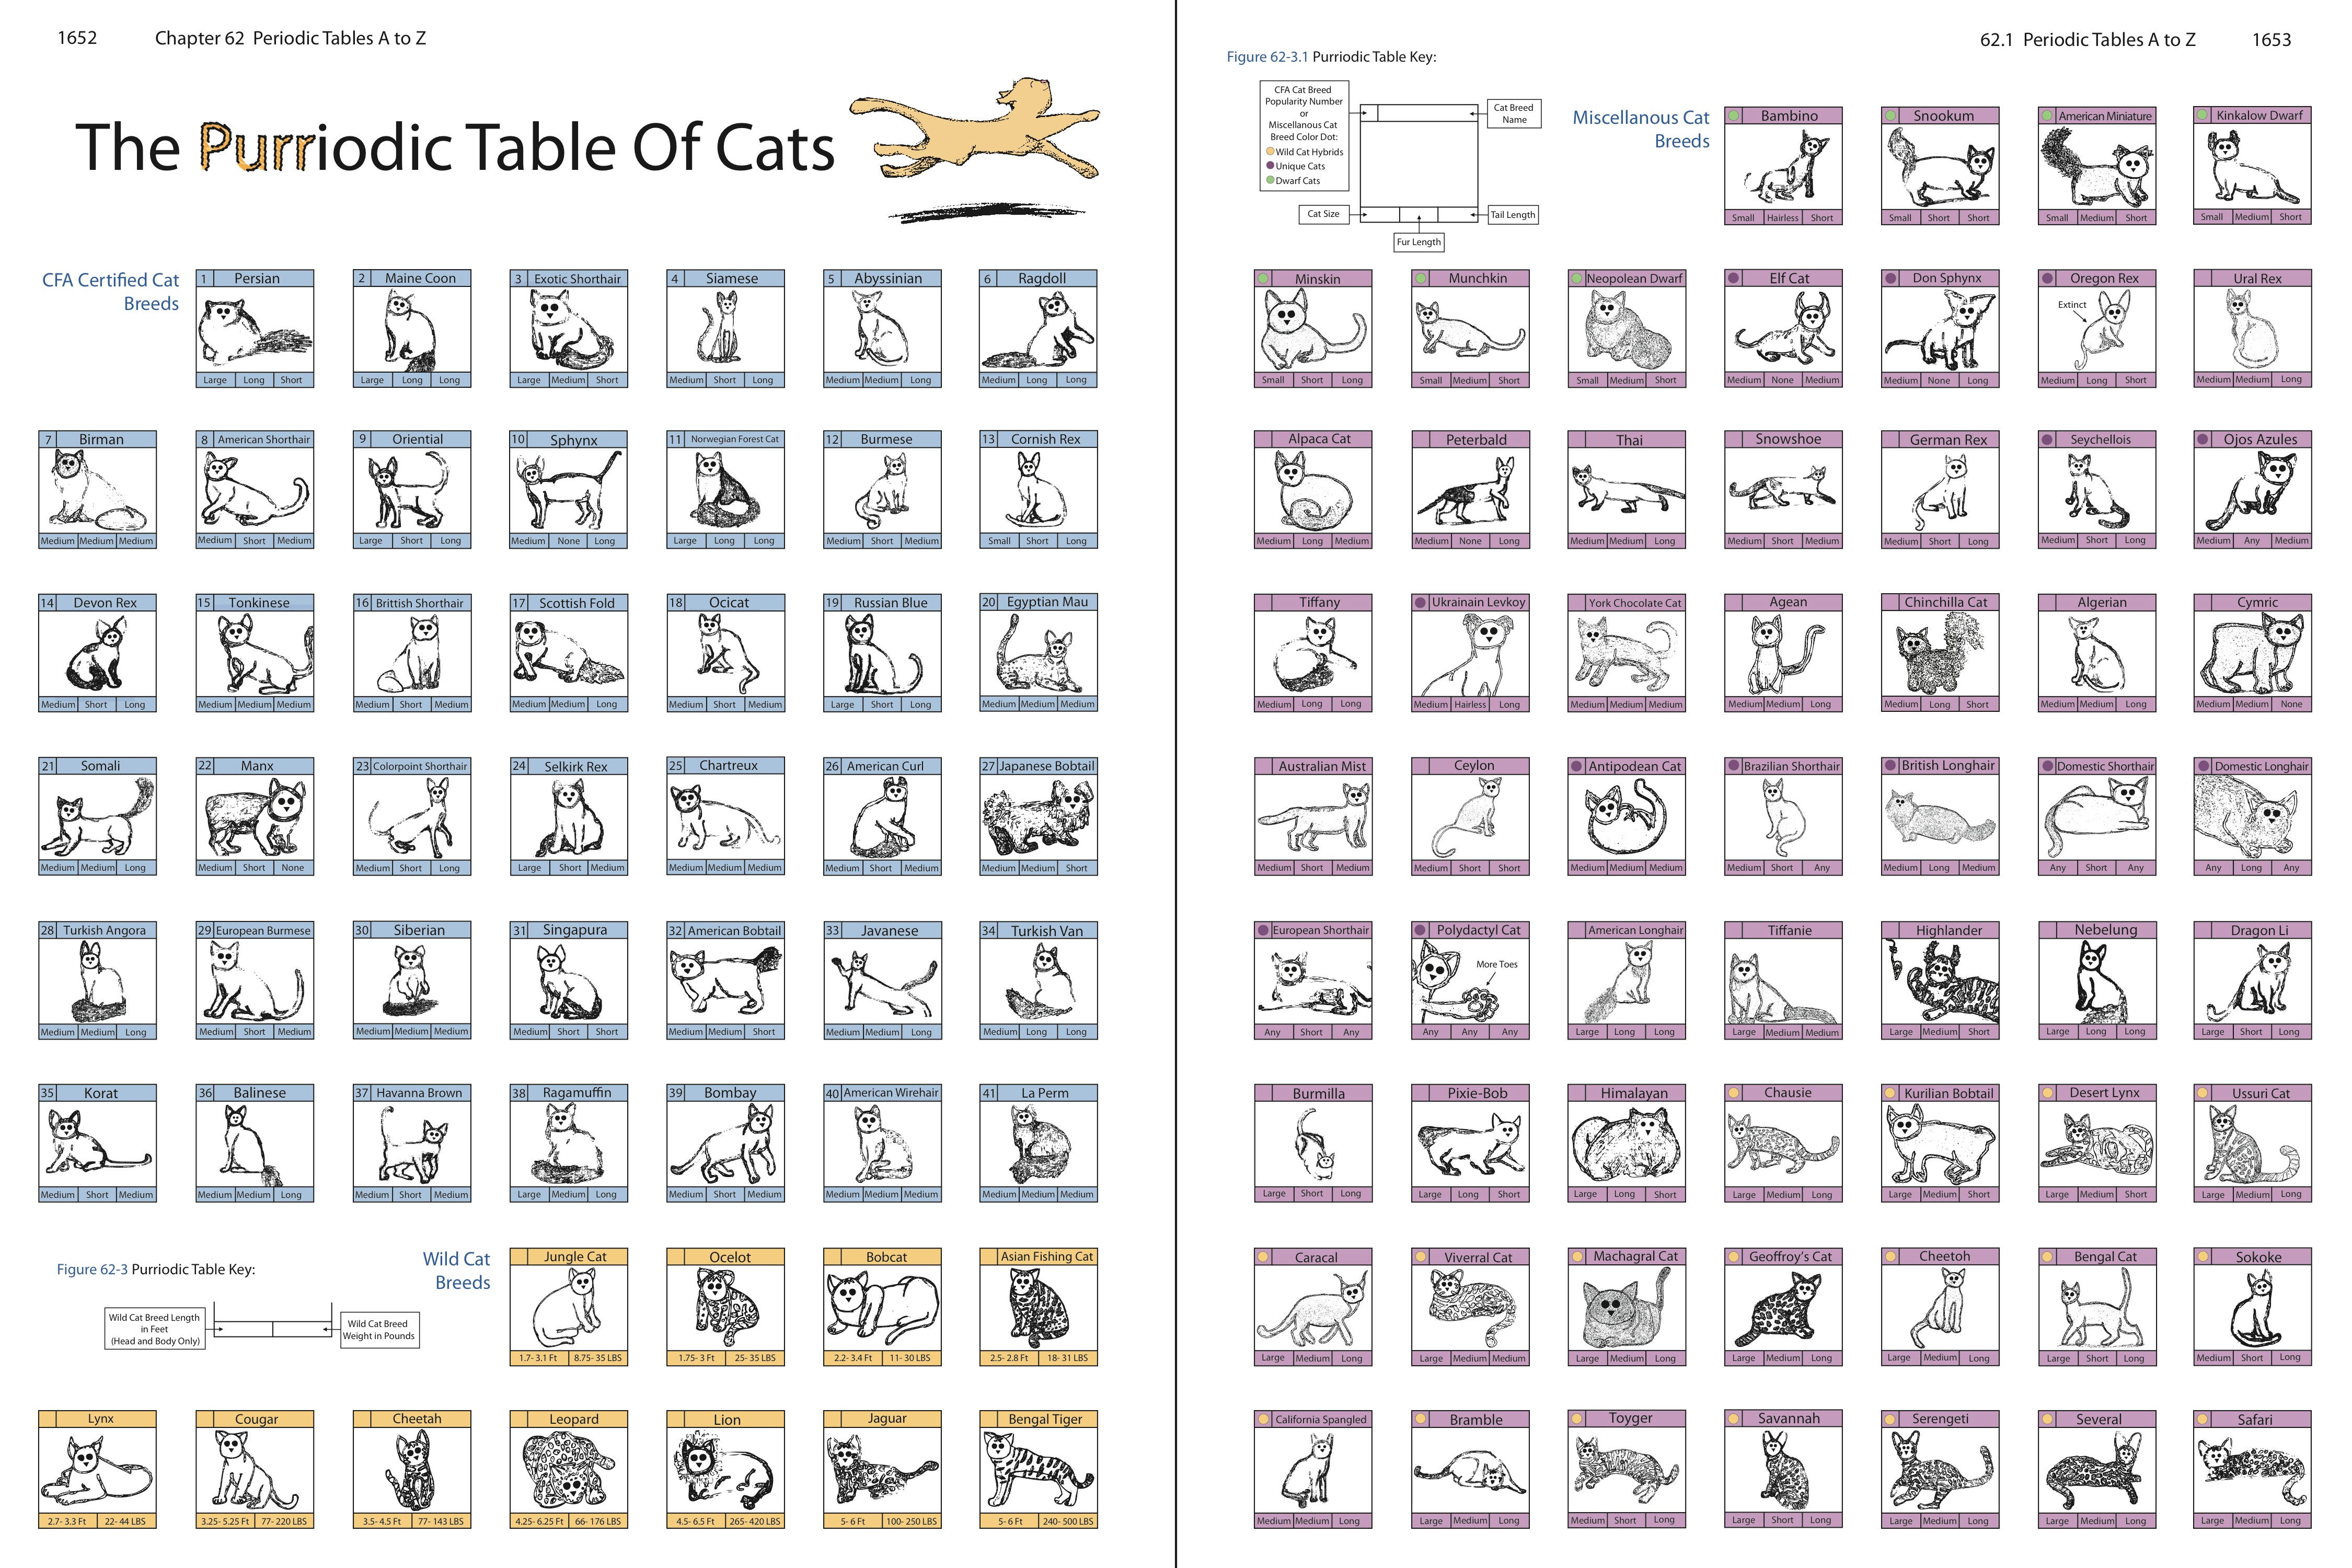 New periodic table cat names names periodic table cat table cats purriodic deviantart on by the macabre of dancer urtaz Gallery